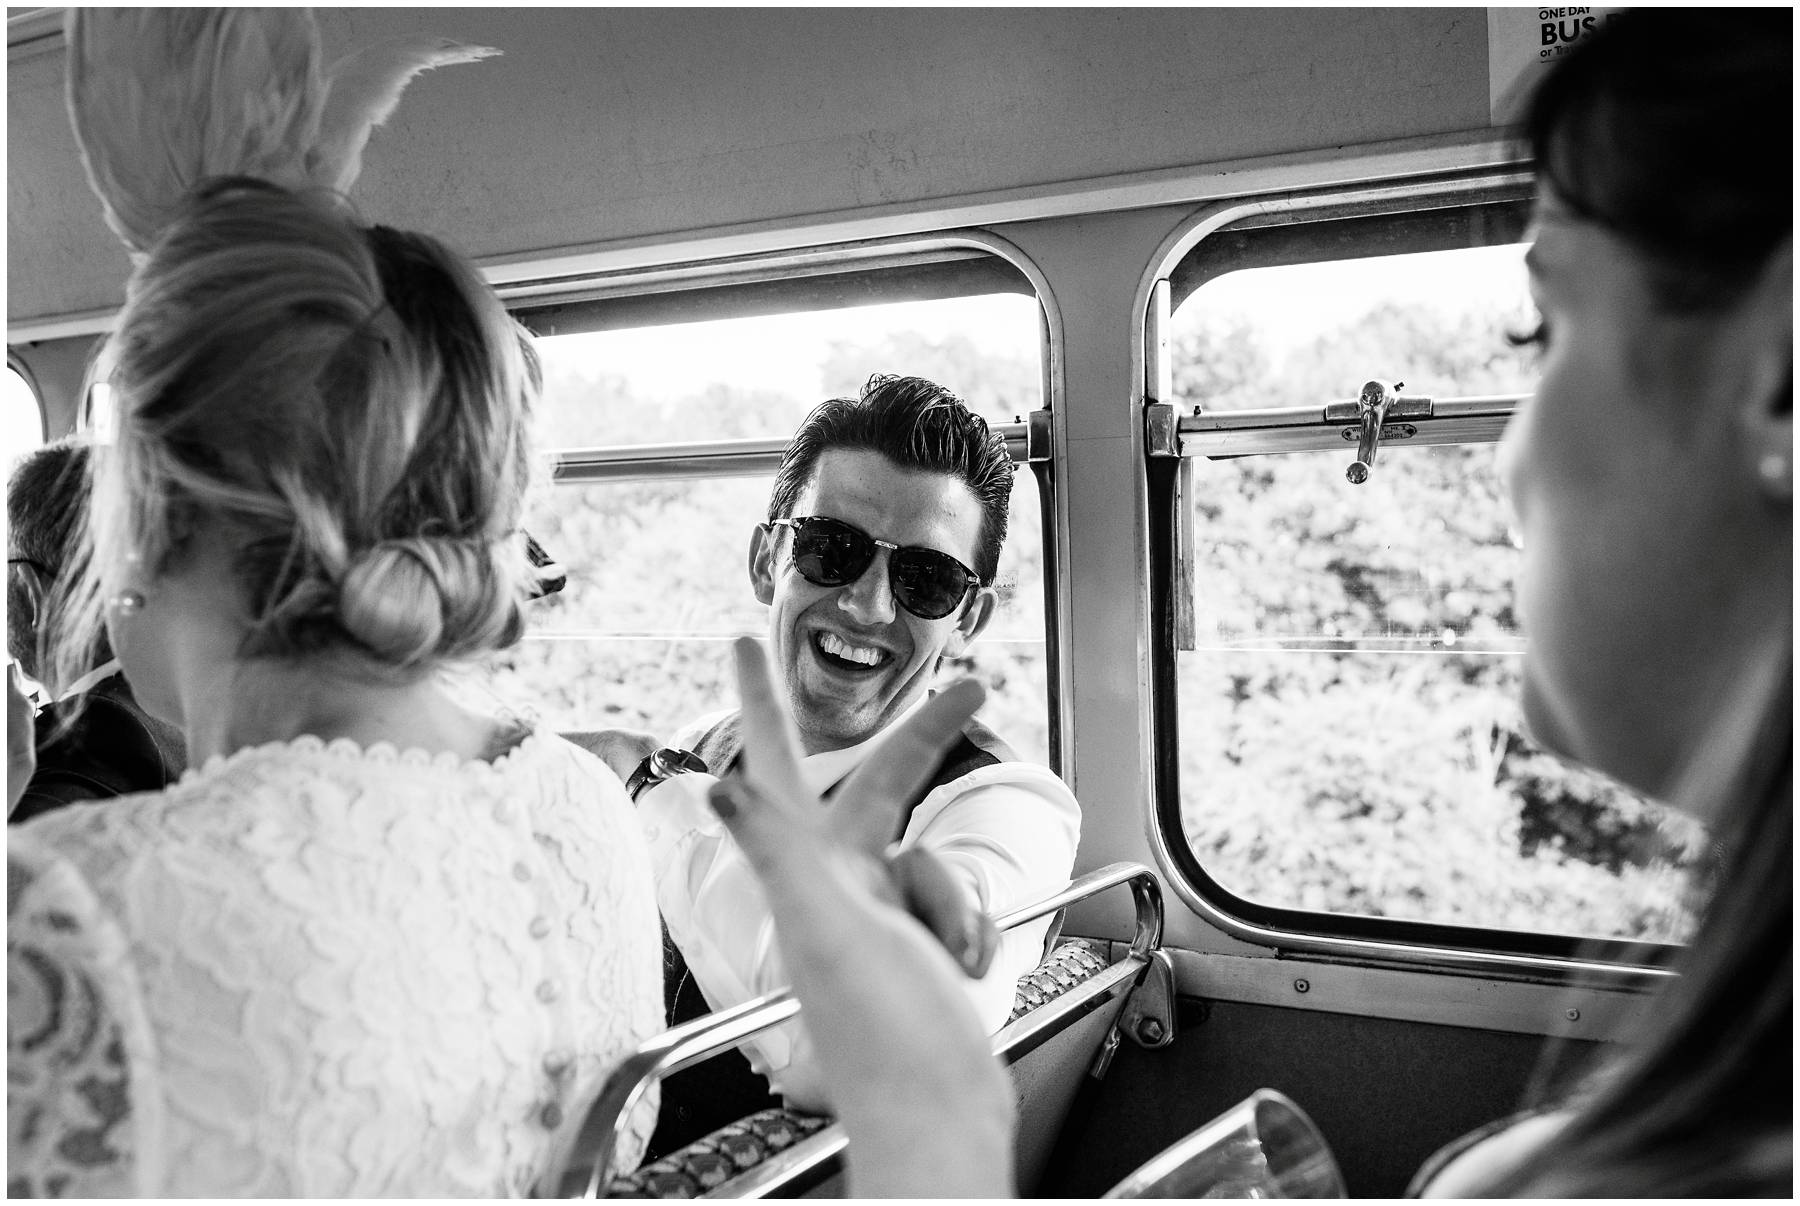 Reportage Wedding Photography on a Kent routemaster